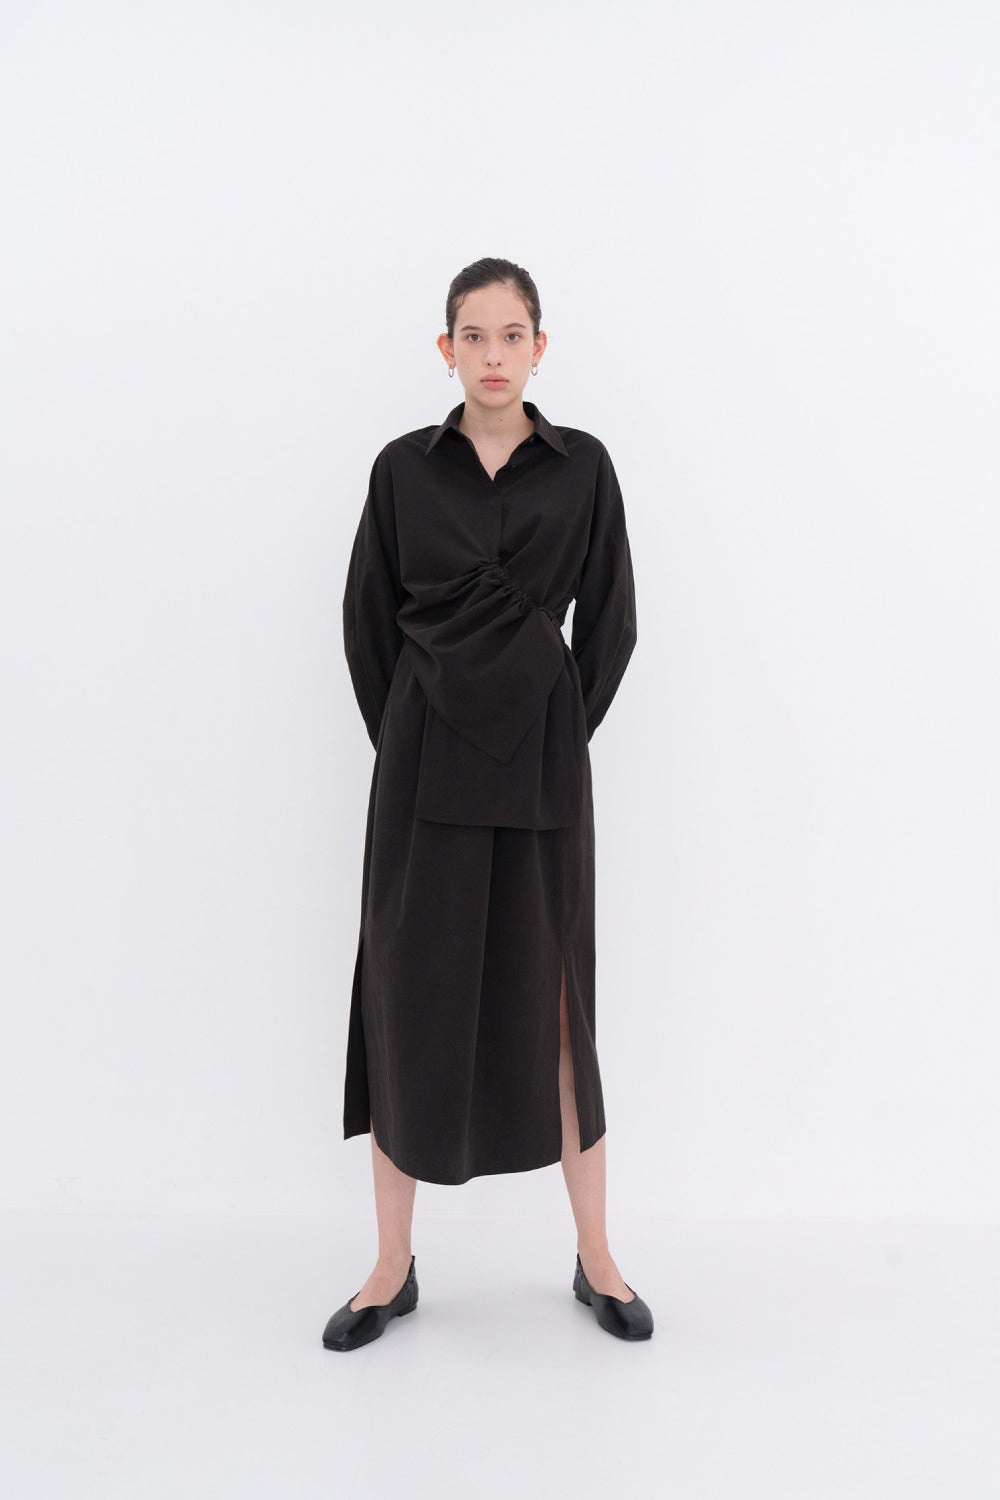 NOTA String Shirring Unbalance Shirt Black Modest Long-Sleeve Women's Long Formal Top with Asymmetric Front Drape Loose Fit 100% Cotton